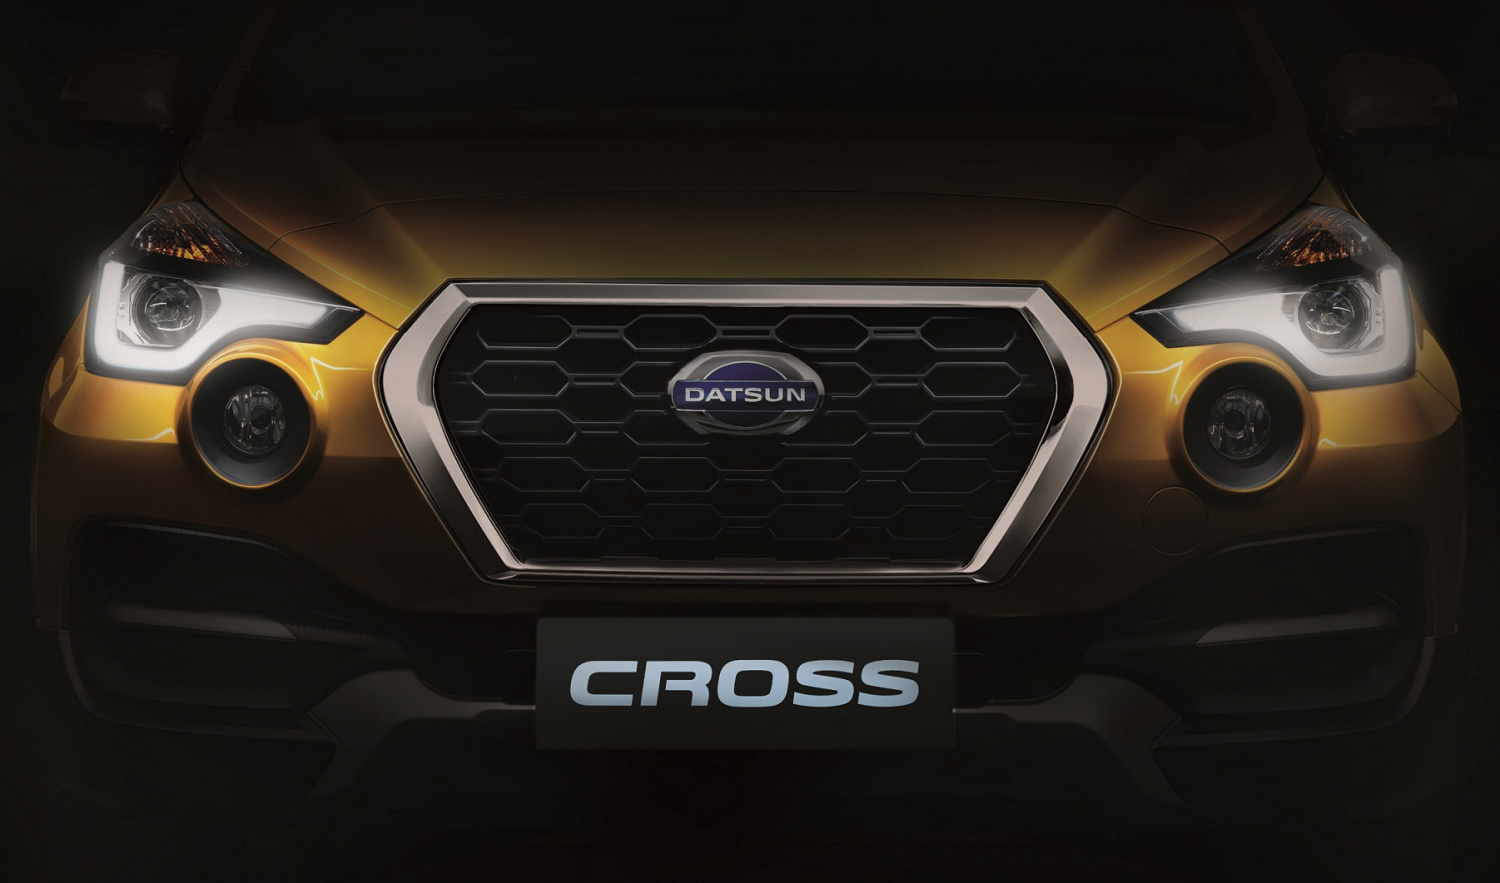 Datsun Cross world debut in Indonesia on January 18